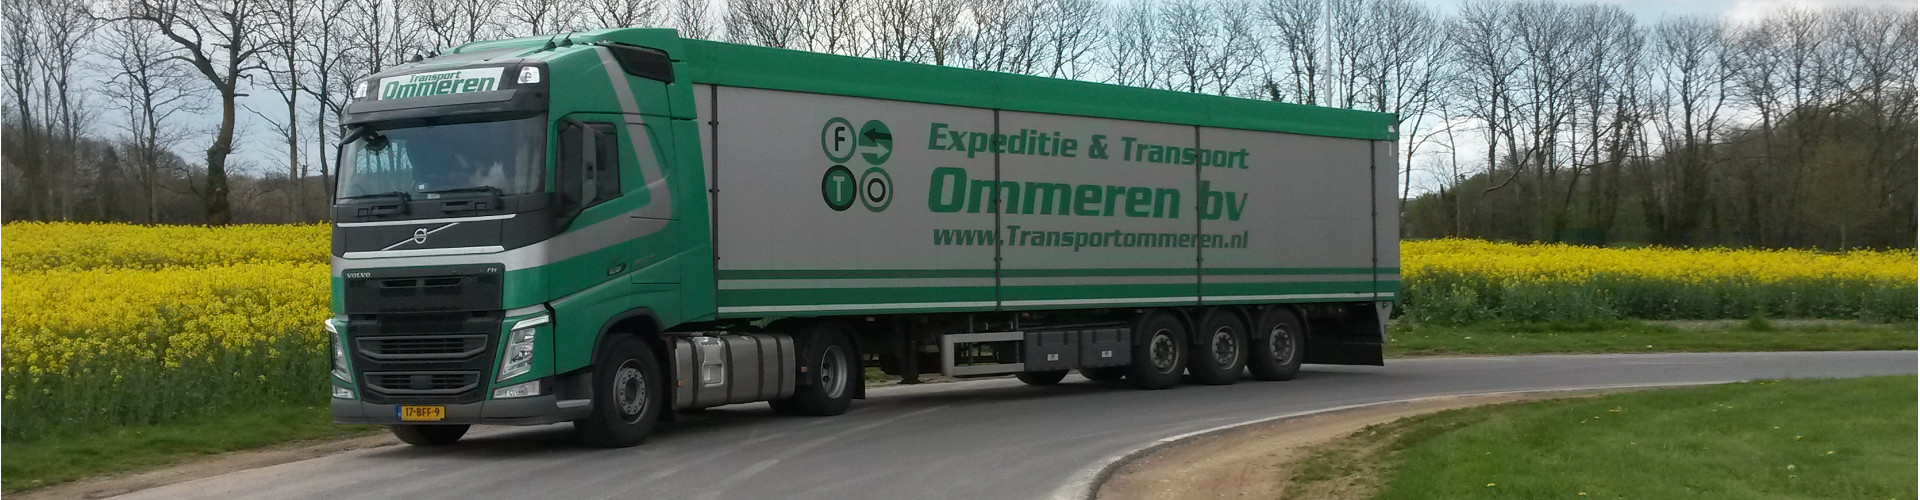 Transport Ommeren